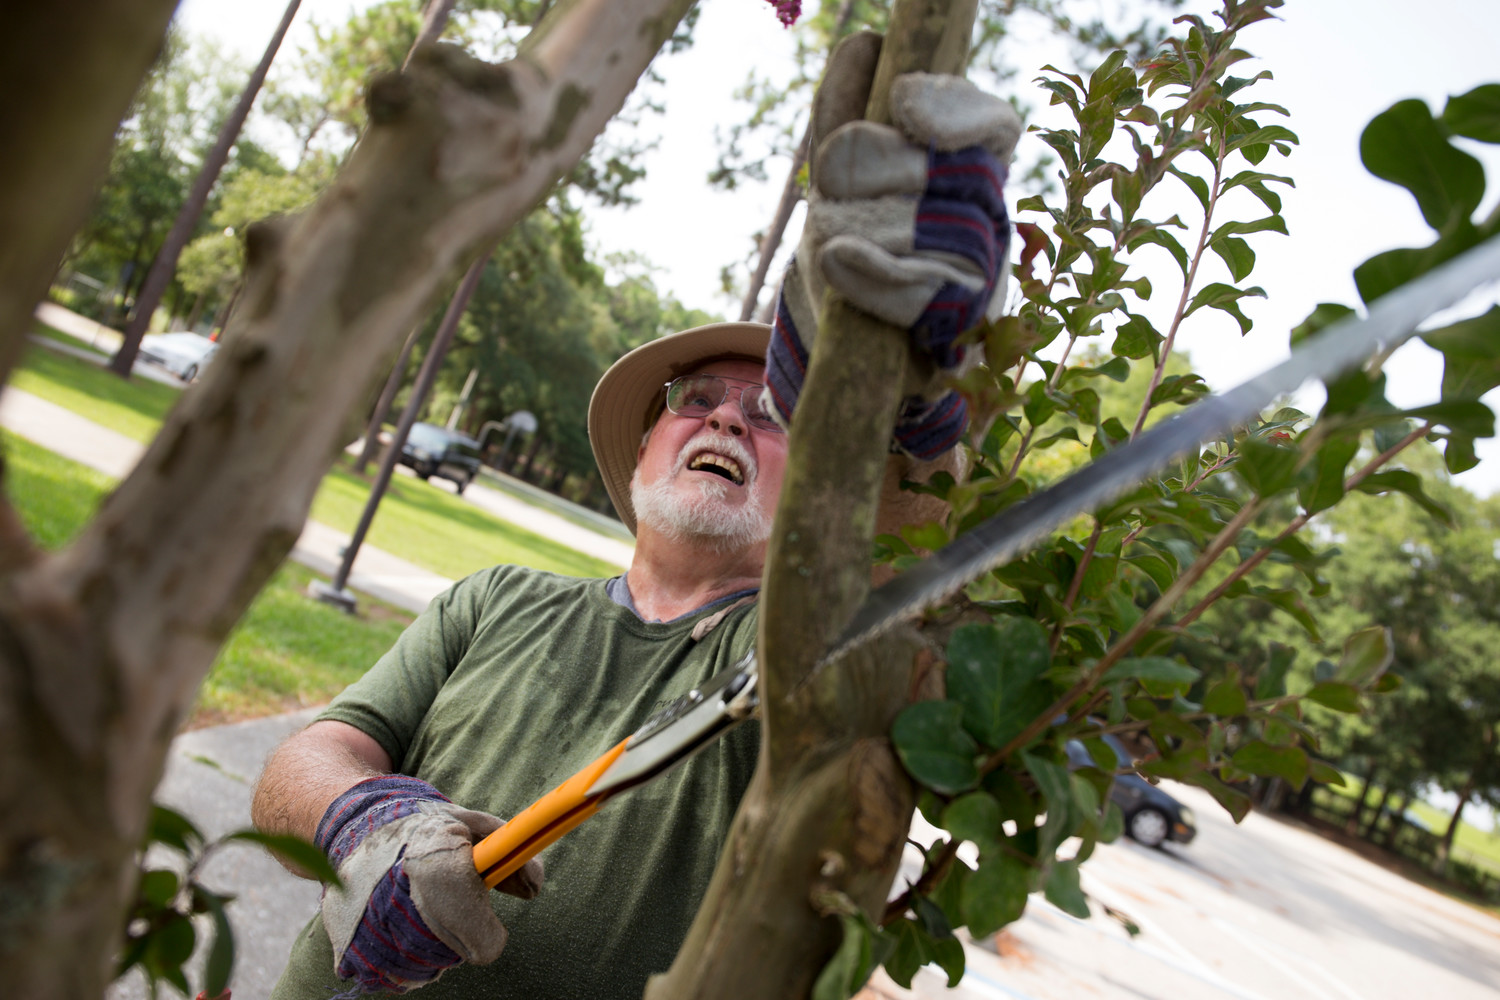 A volunteer of the Duval County Tree Stewards trims a tree limb at a park near Jacksonville, Florida.